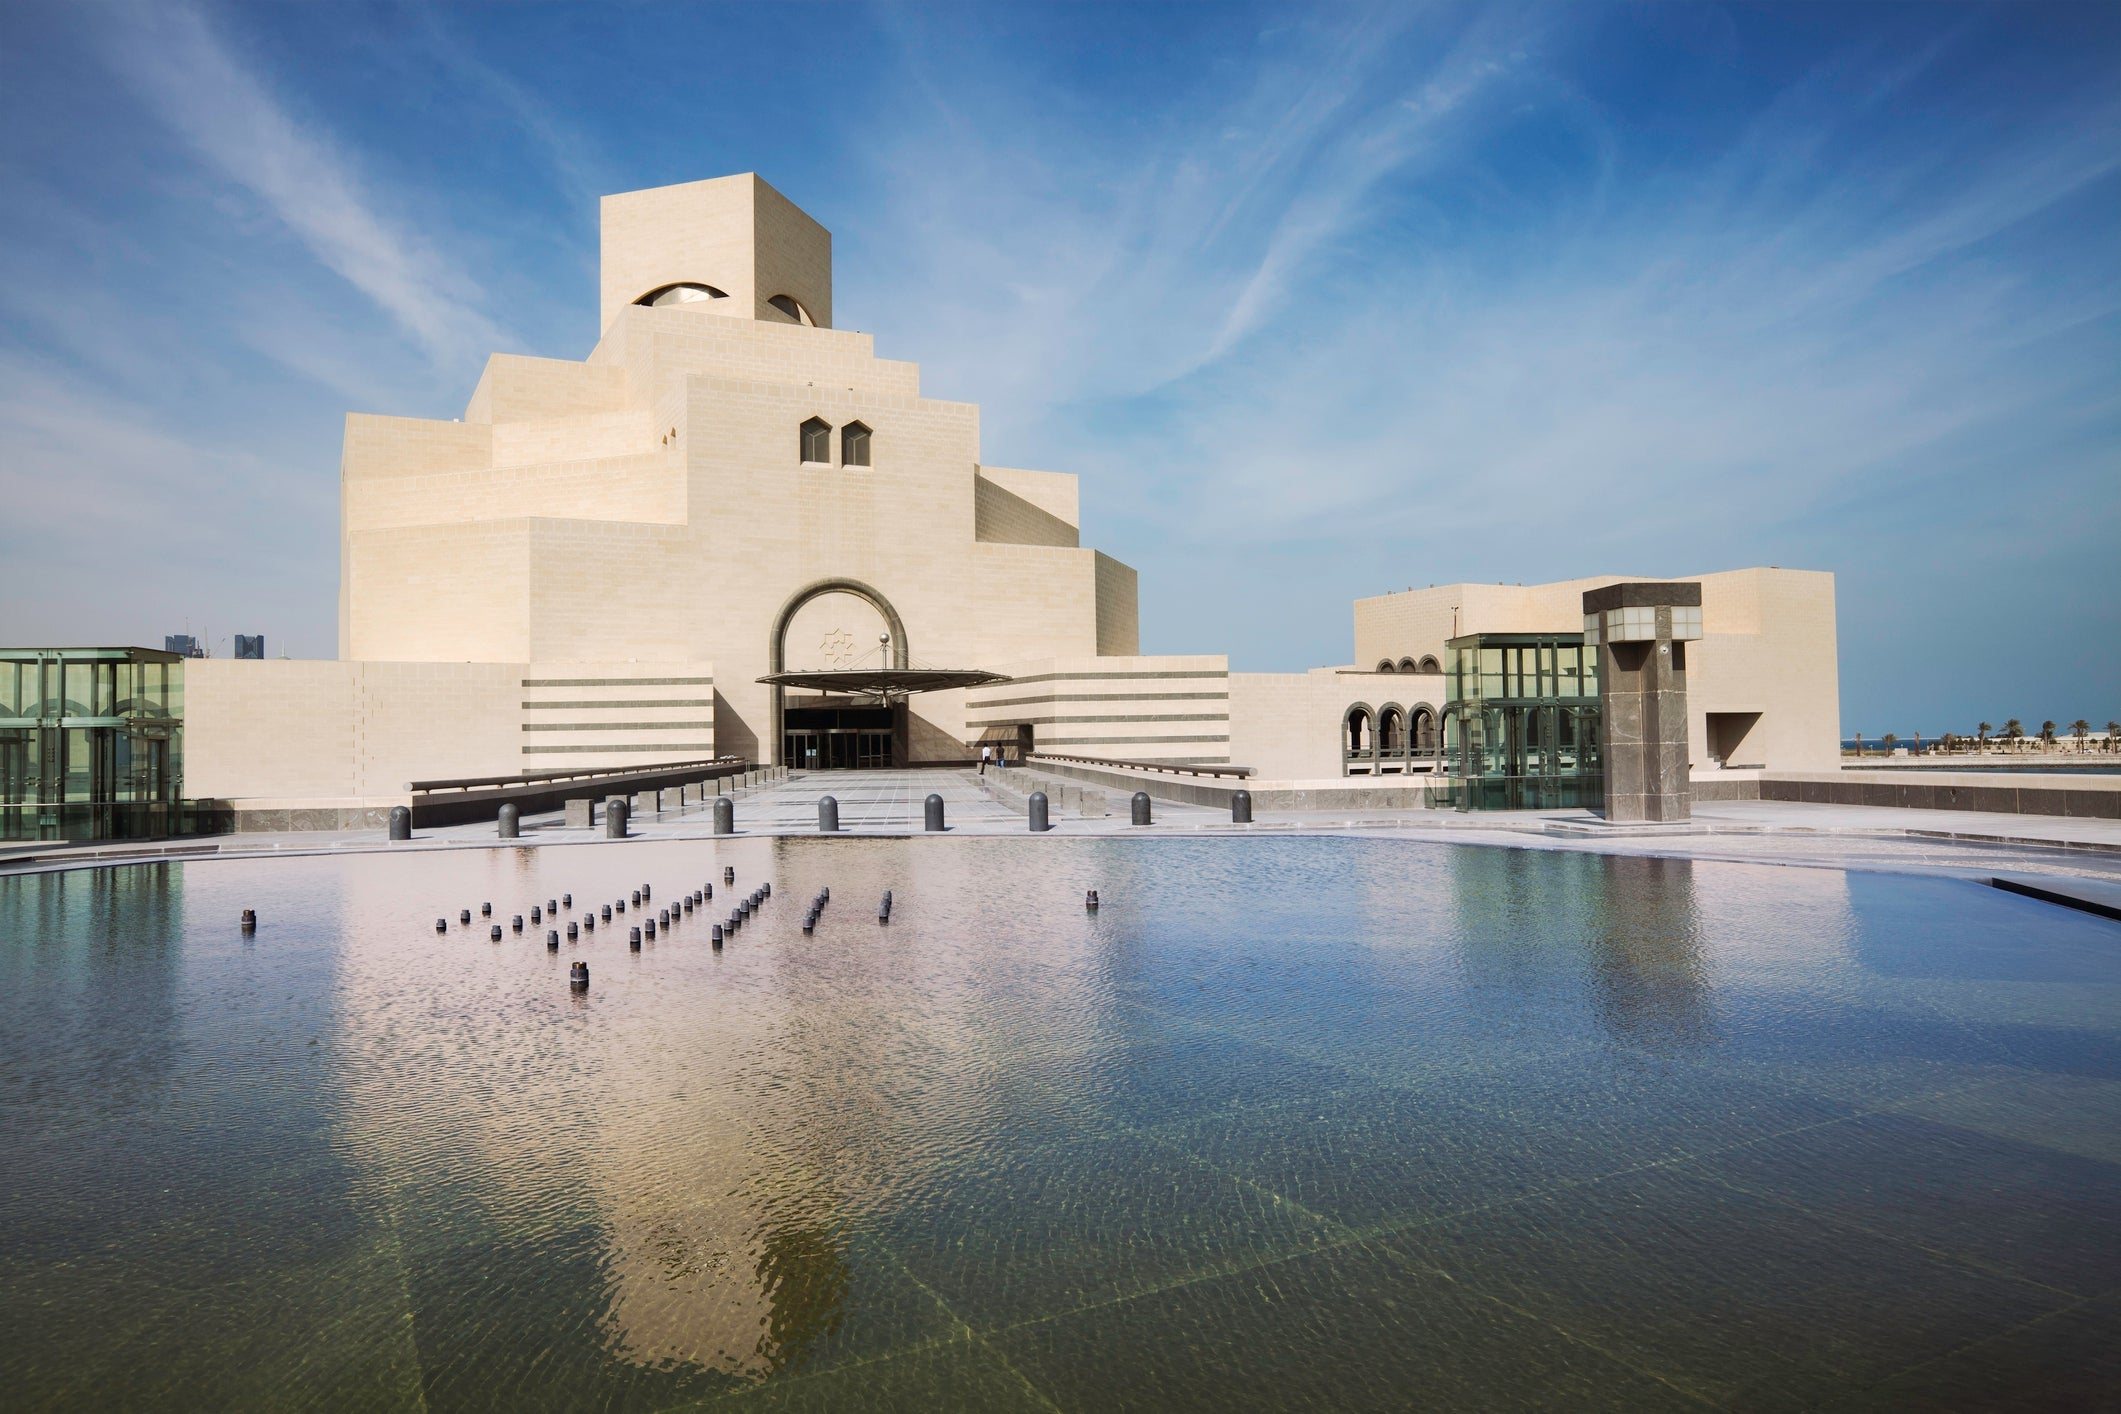 Doha, Qatar: Avant-garde architecture blooms in the desert